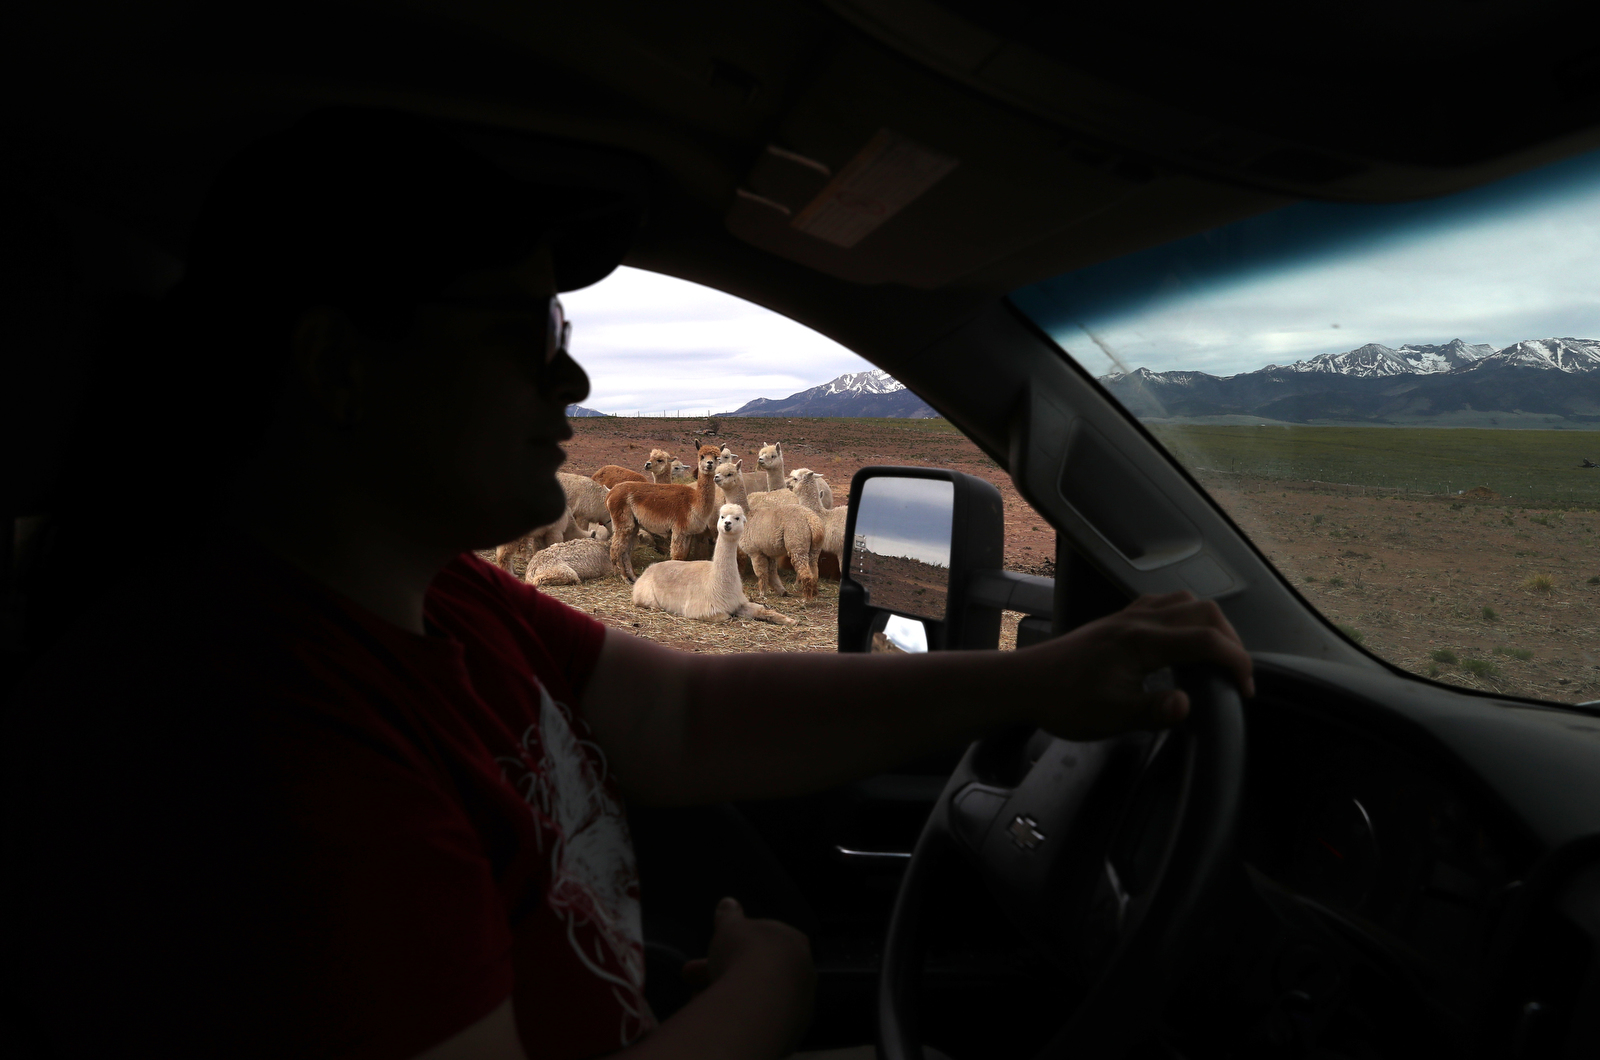 A group of alpaca watch as Bonnie Nelson drives past them on the ranch.